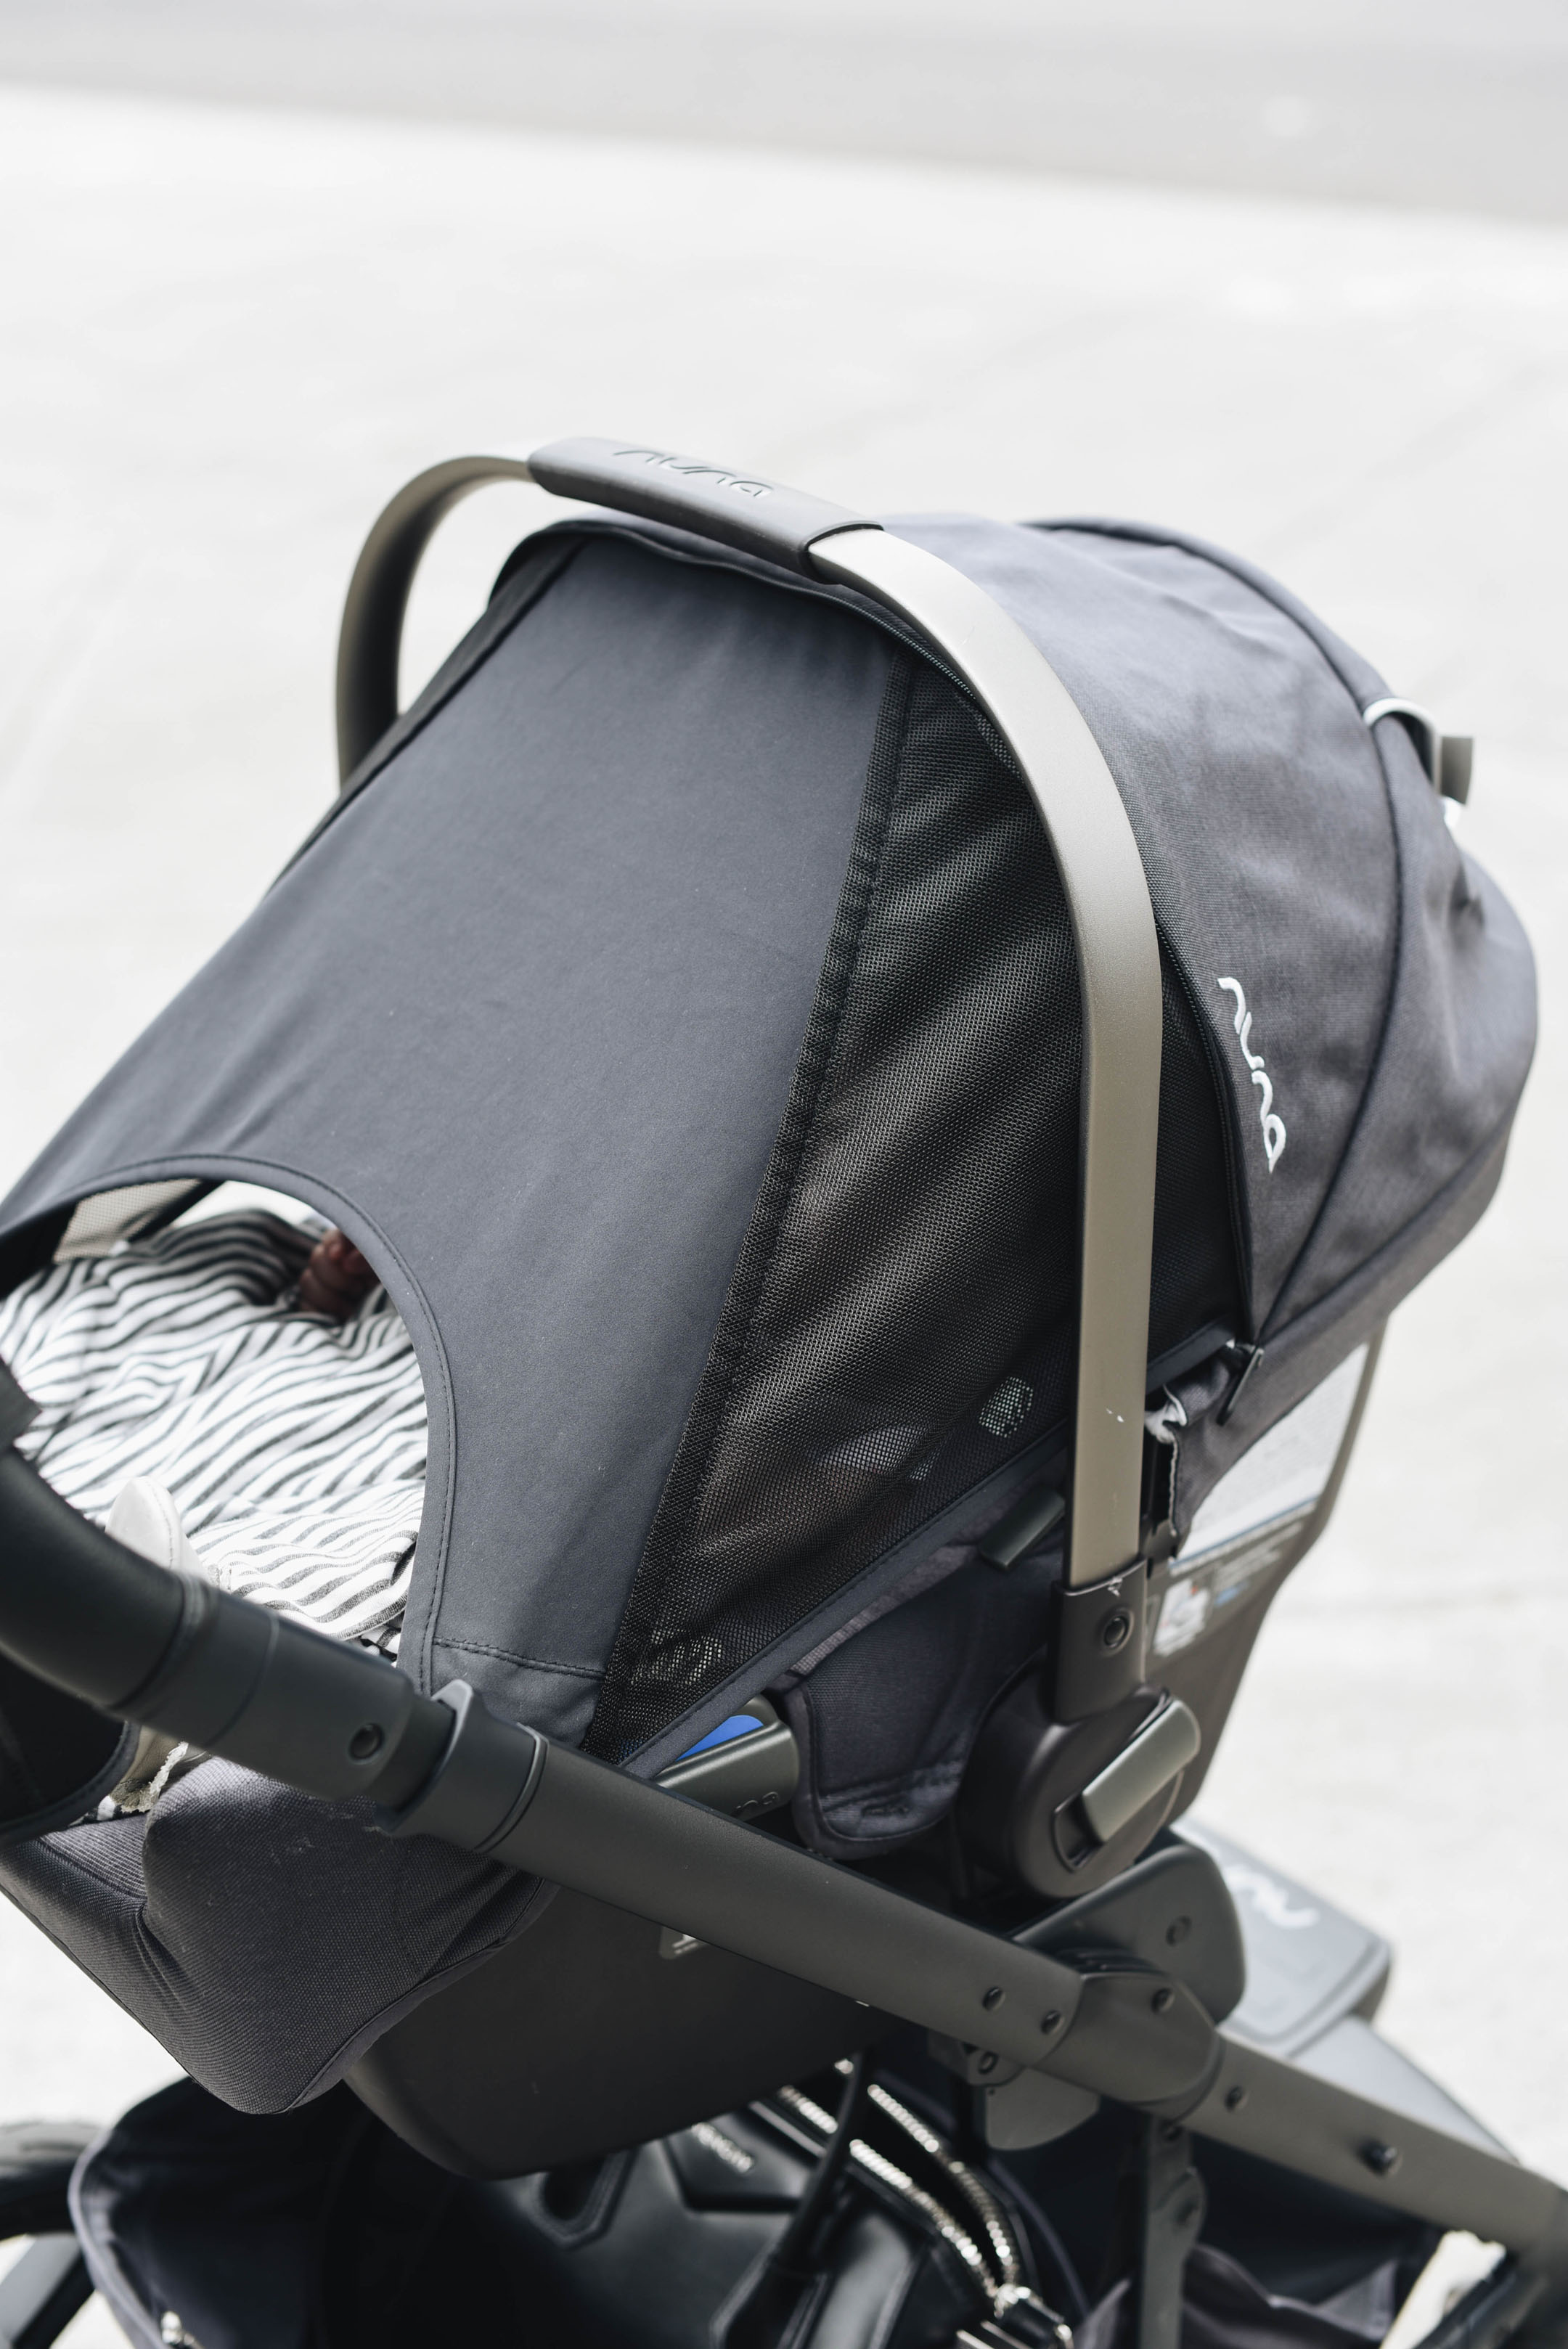 Car Seat Stroller Travel System Reviews Nuna Mixx Stroller System Pipa Car Seat Set Review